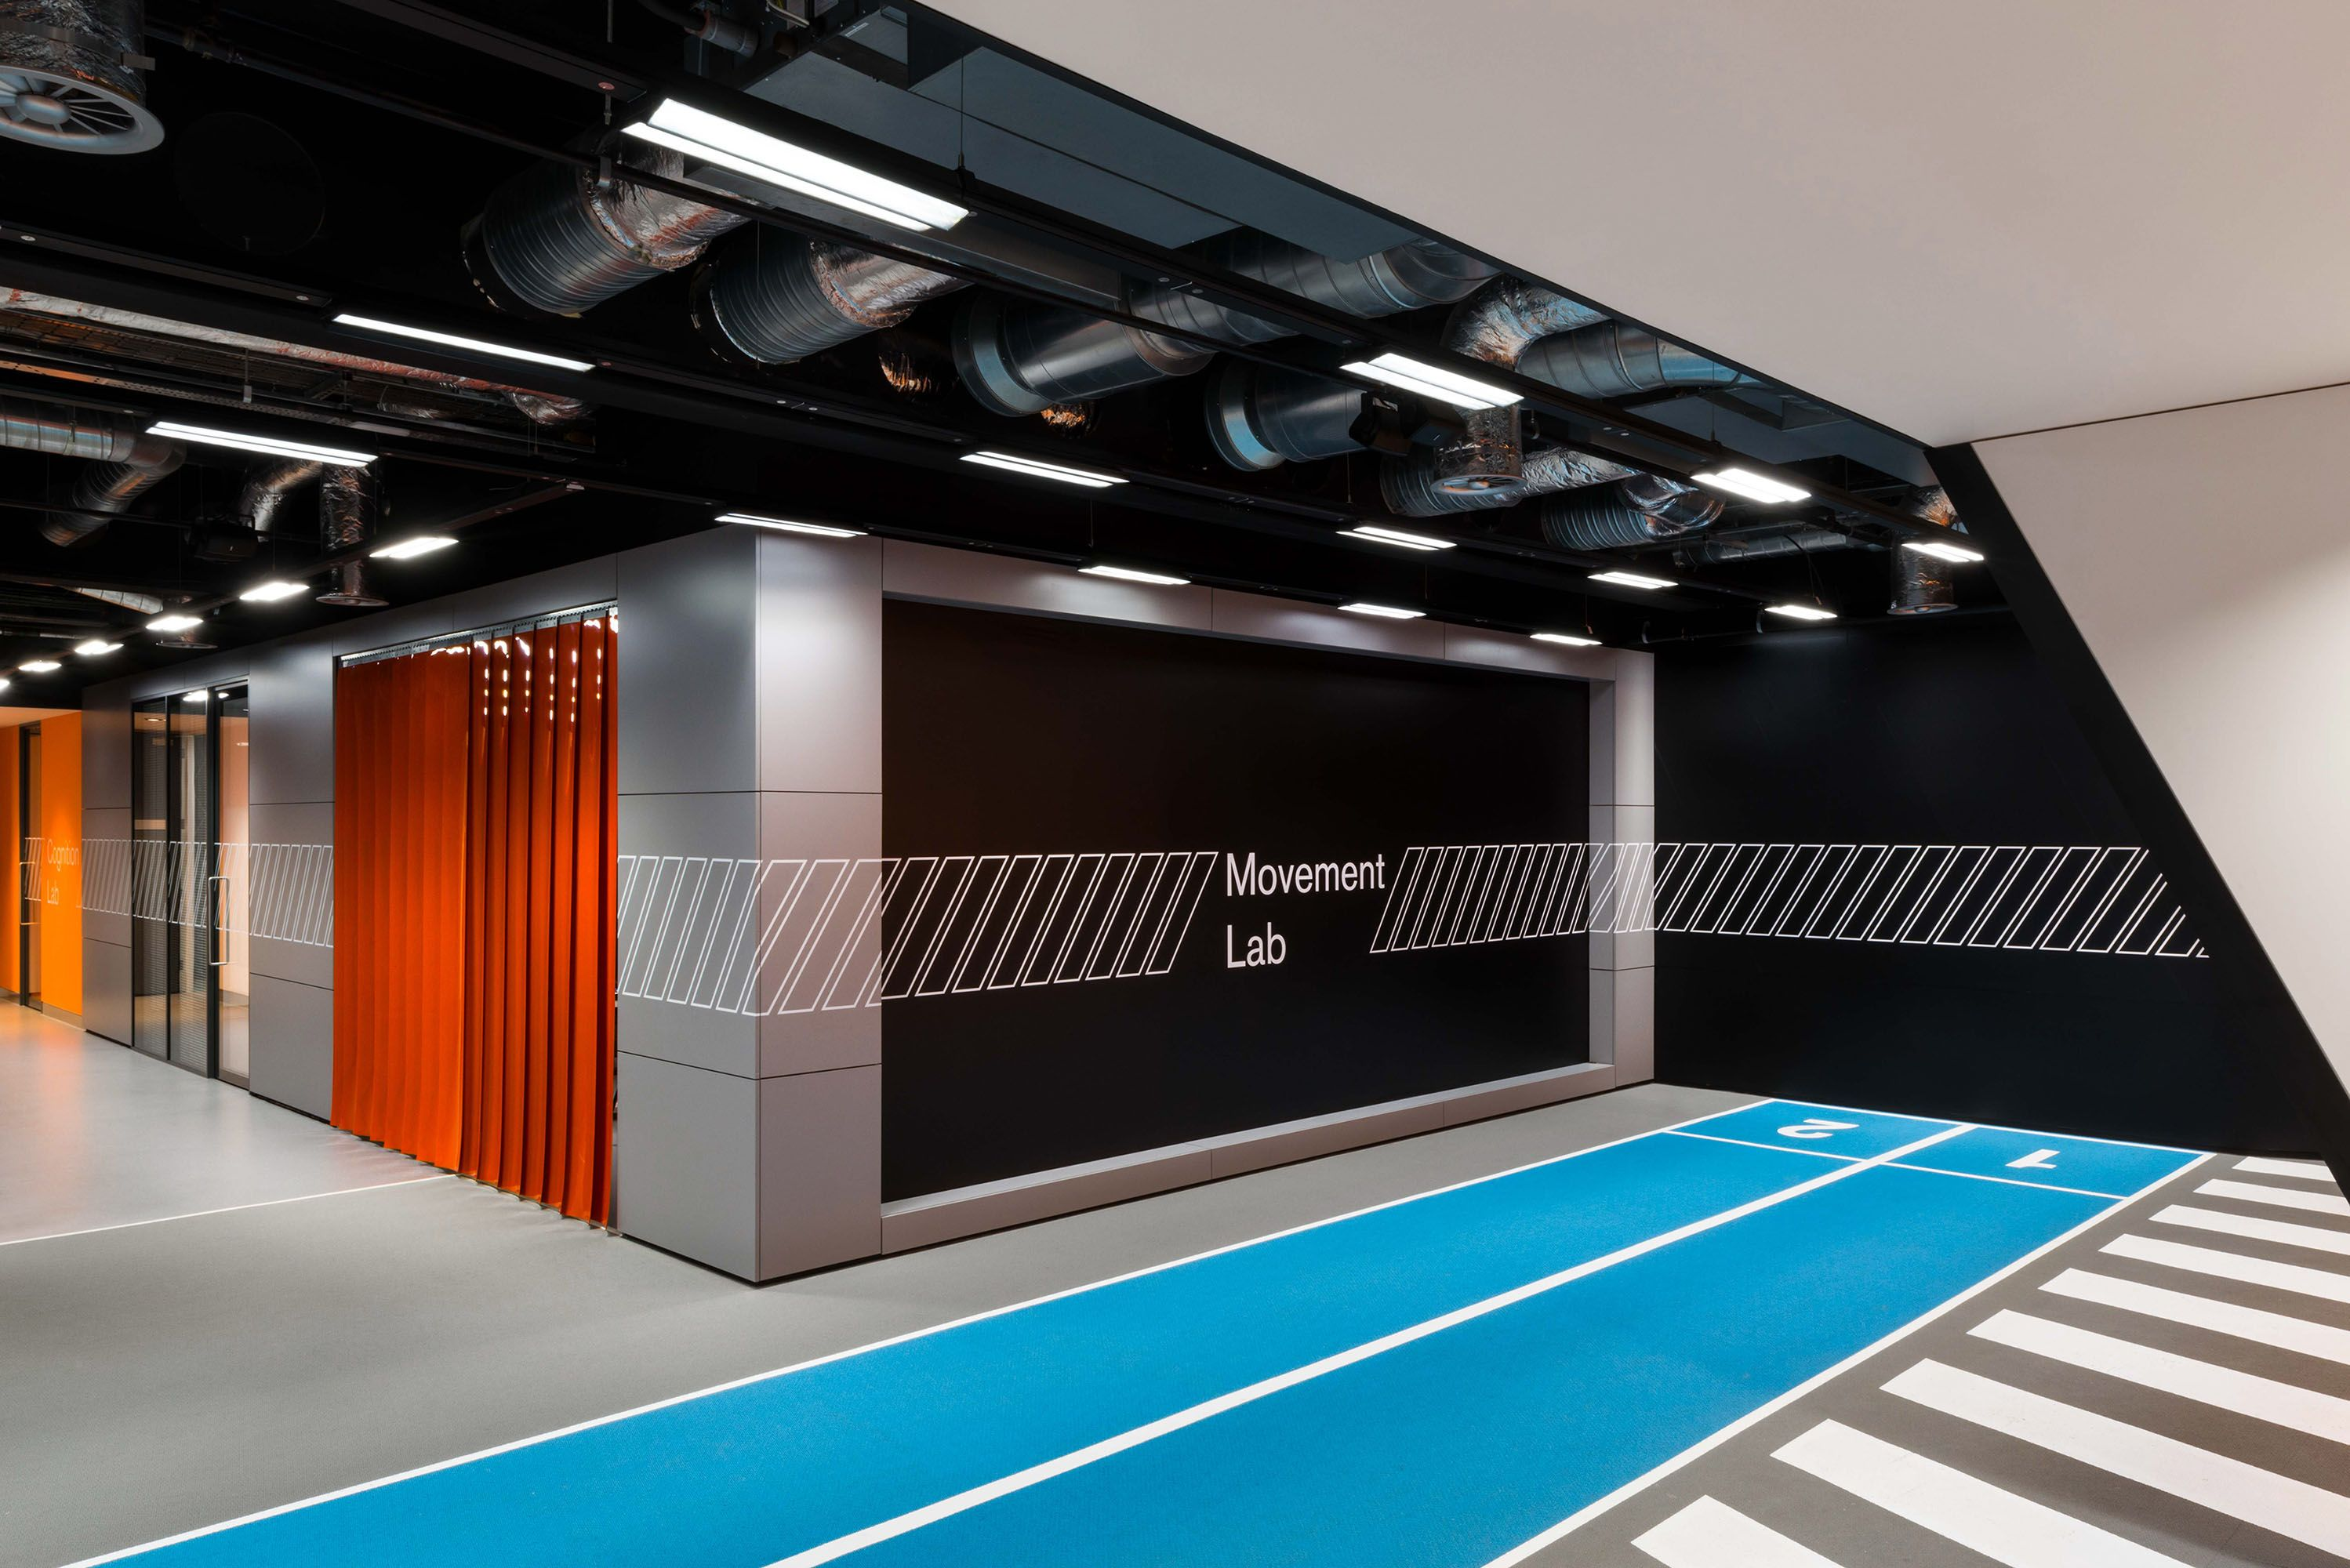 Interior shot of the GSK Movement lab